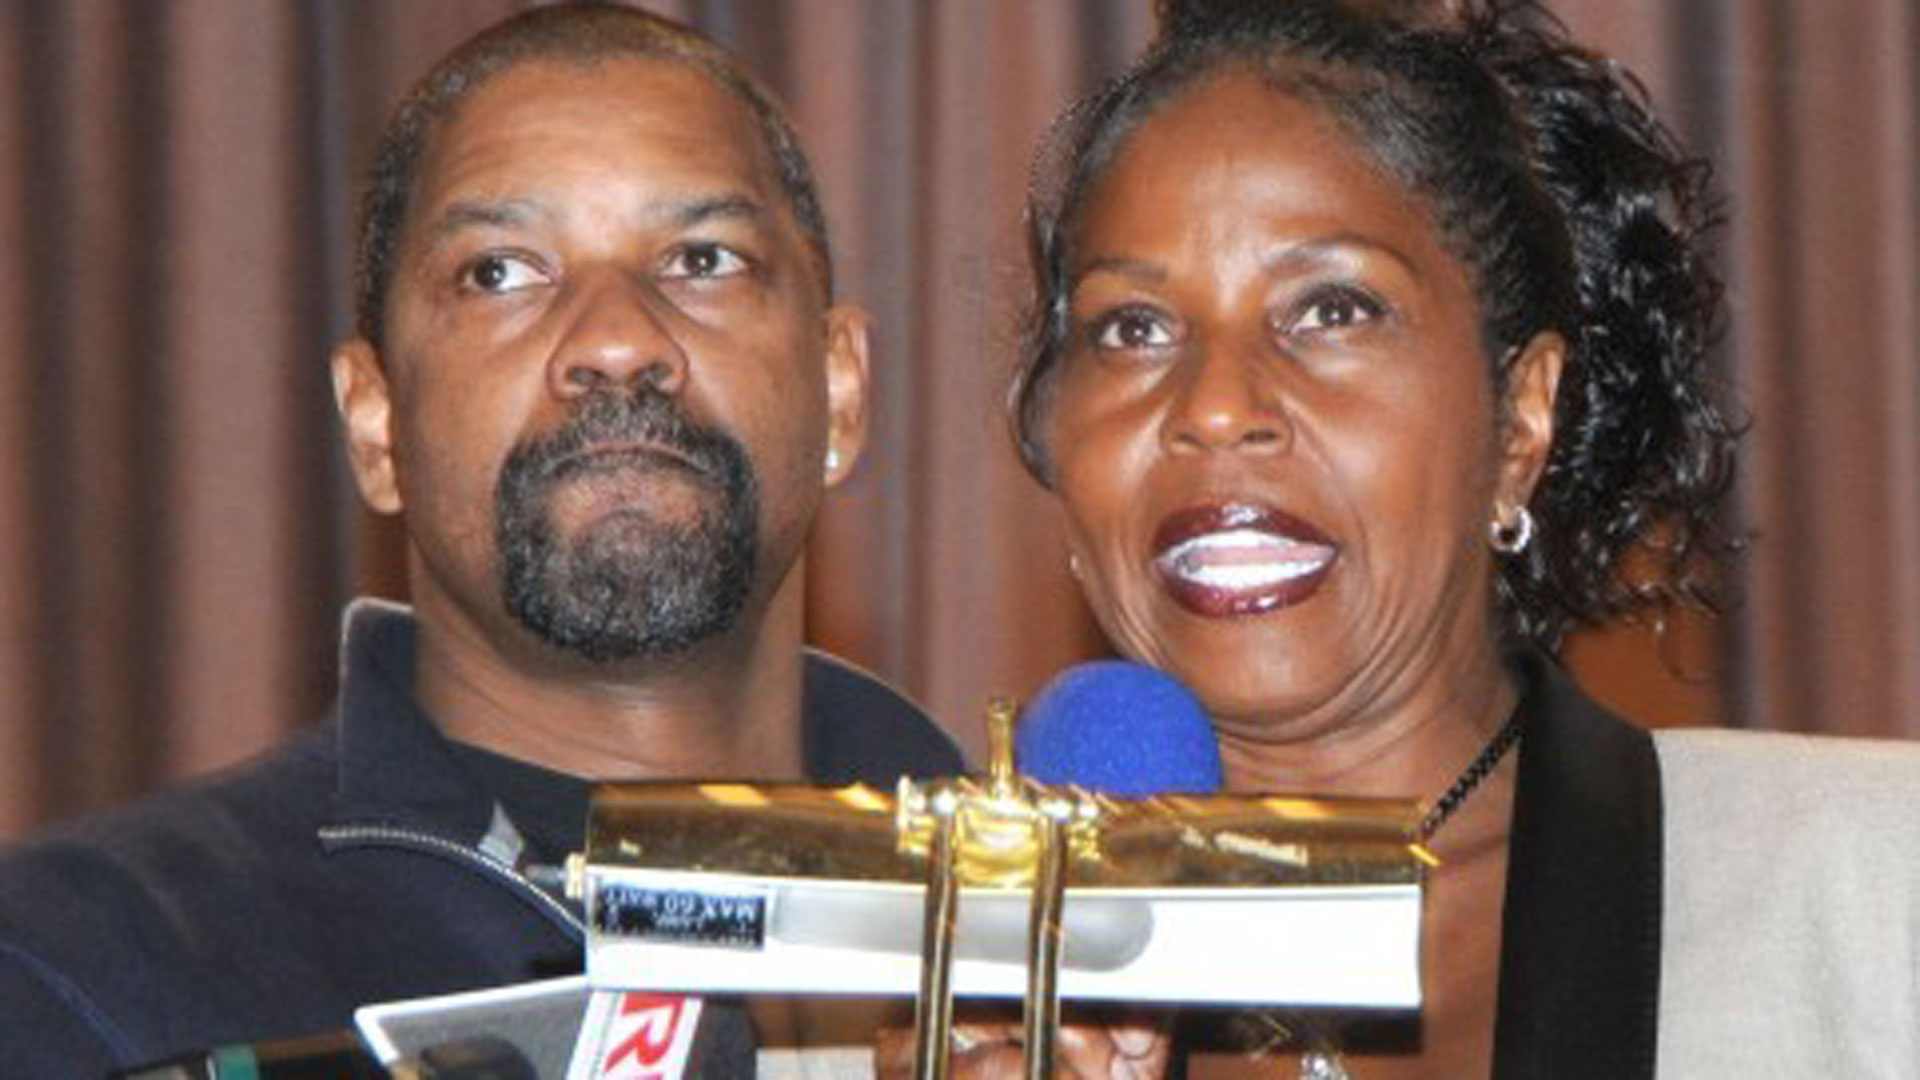 What You Don't Know About Denzel Washington's Marriage